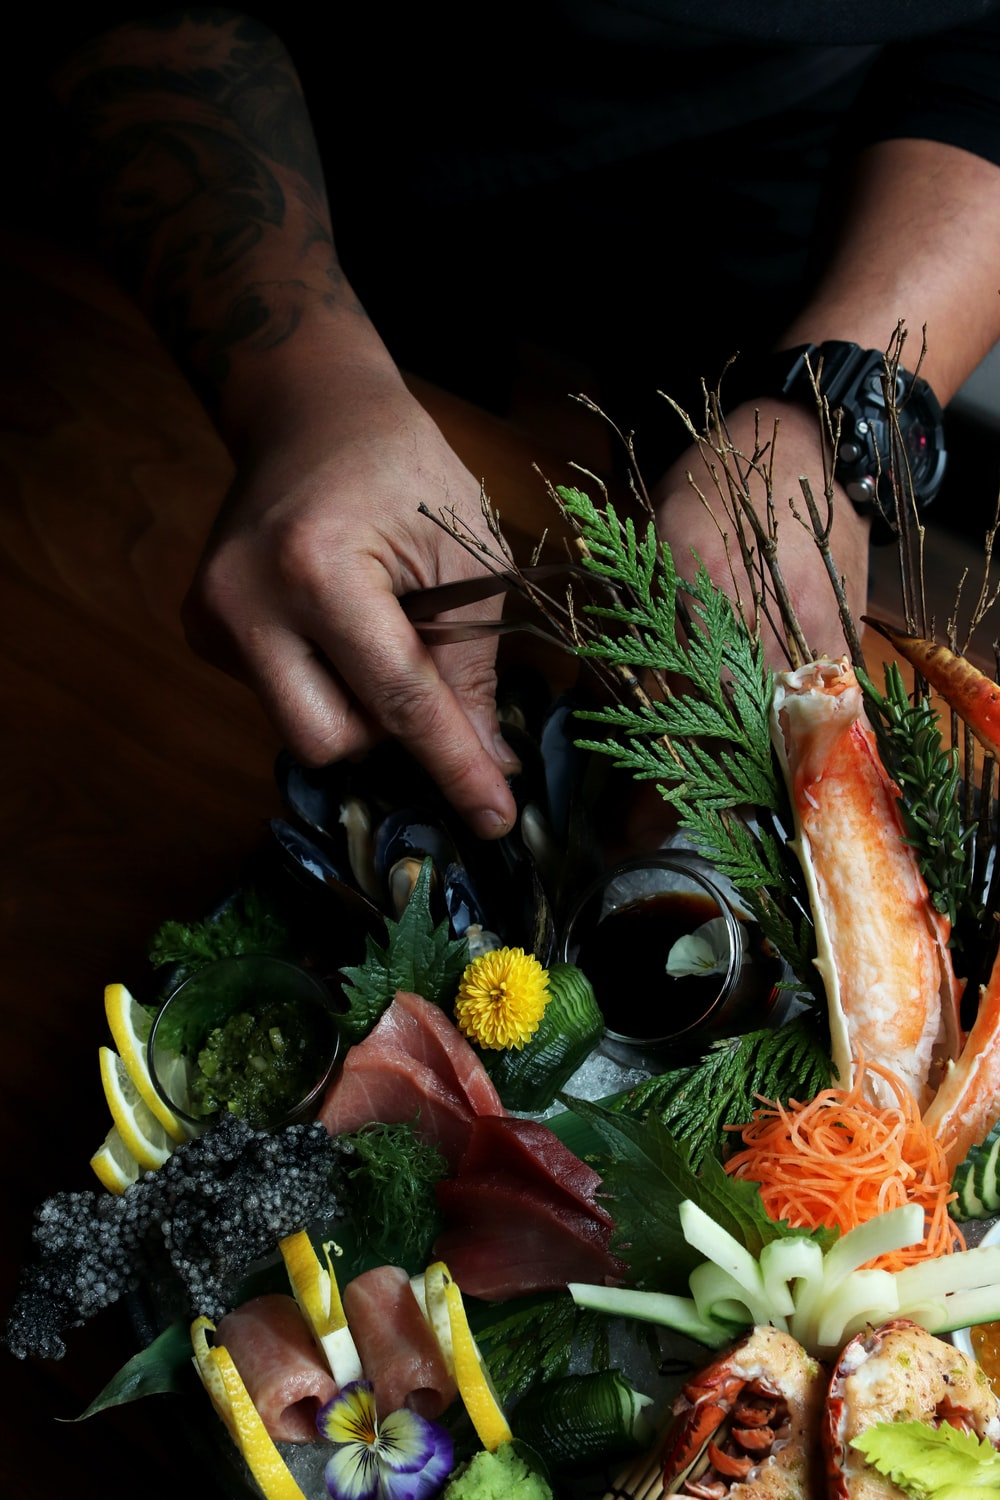 person fixing vegetables with flowers